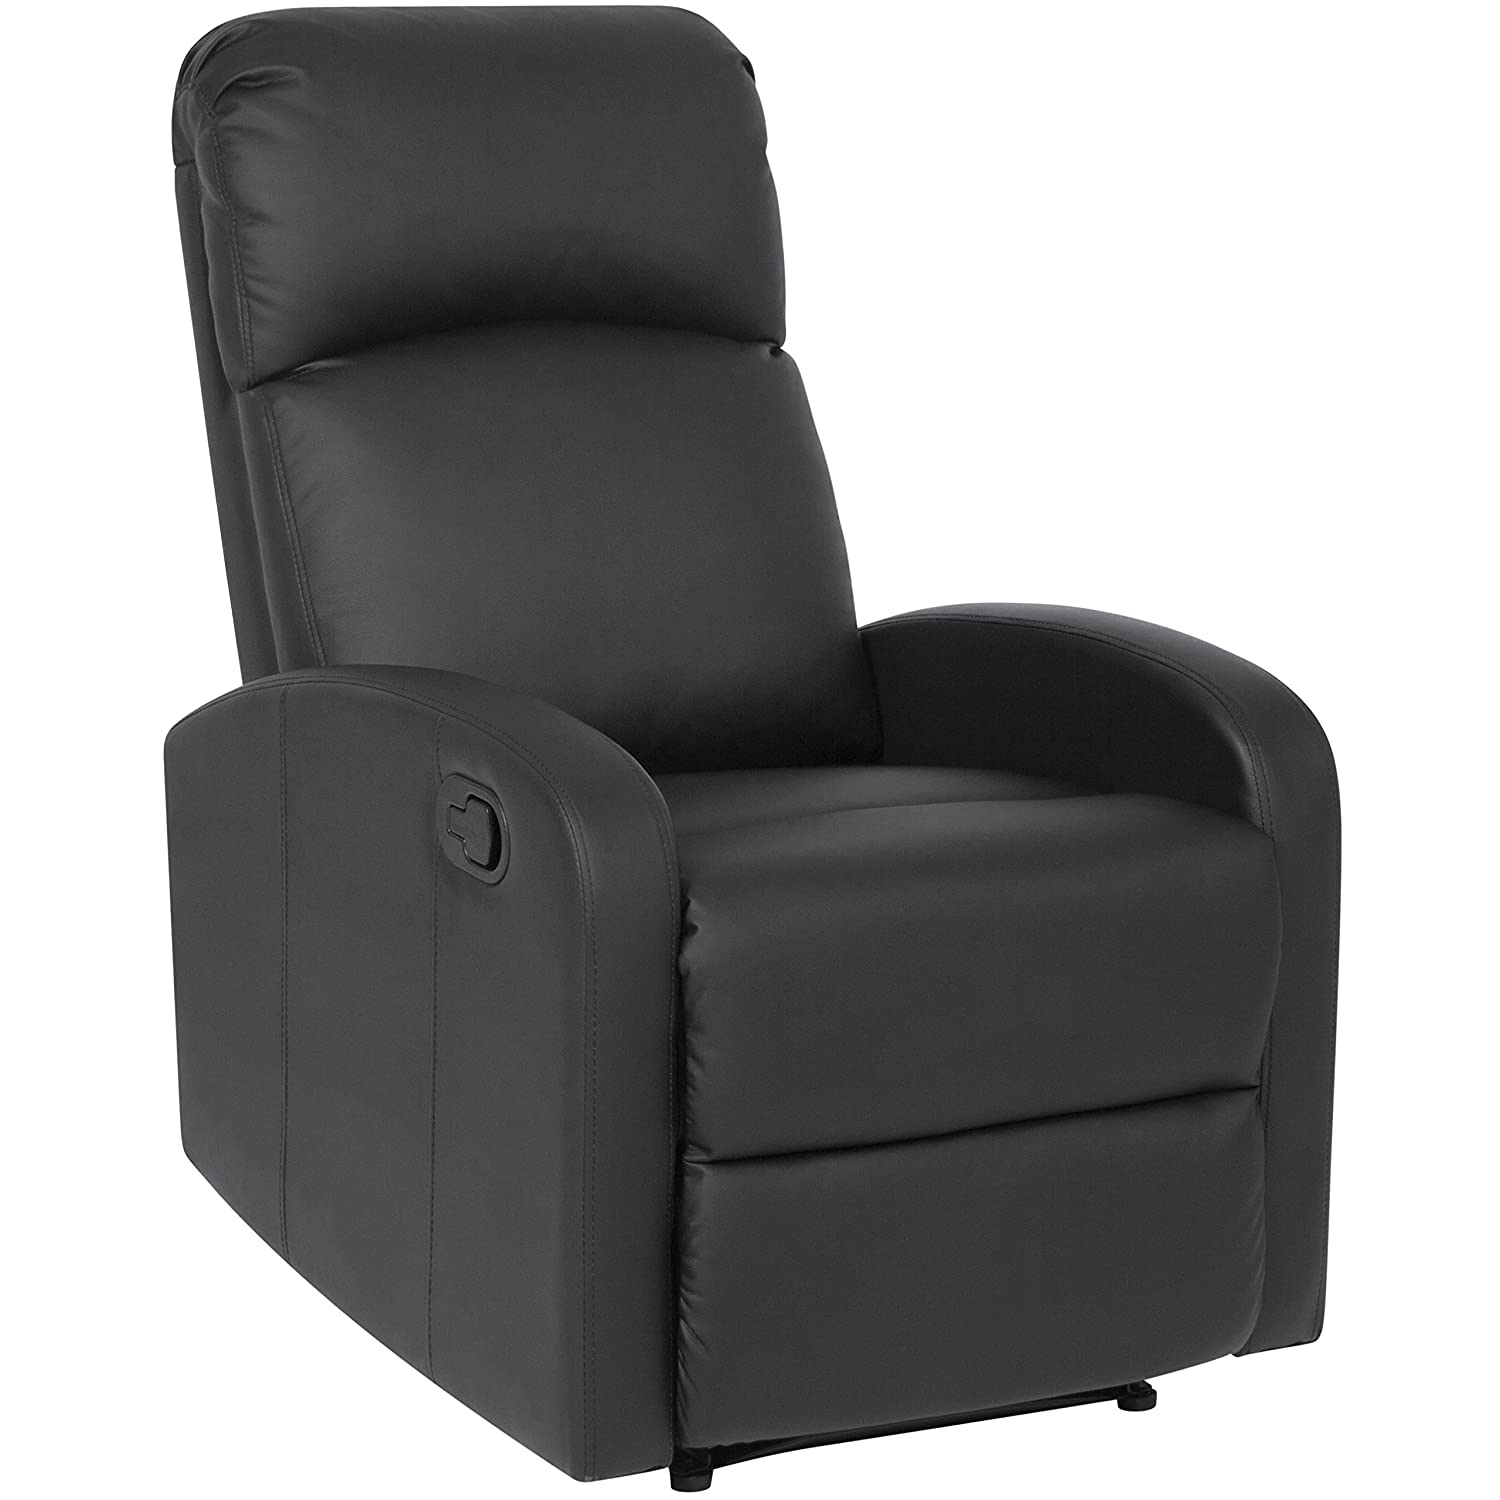 Best Choice Products Furniture Home Theater PU Leather Recliner Chair- Black SKY3069